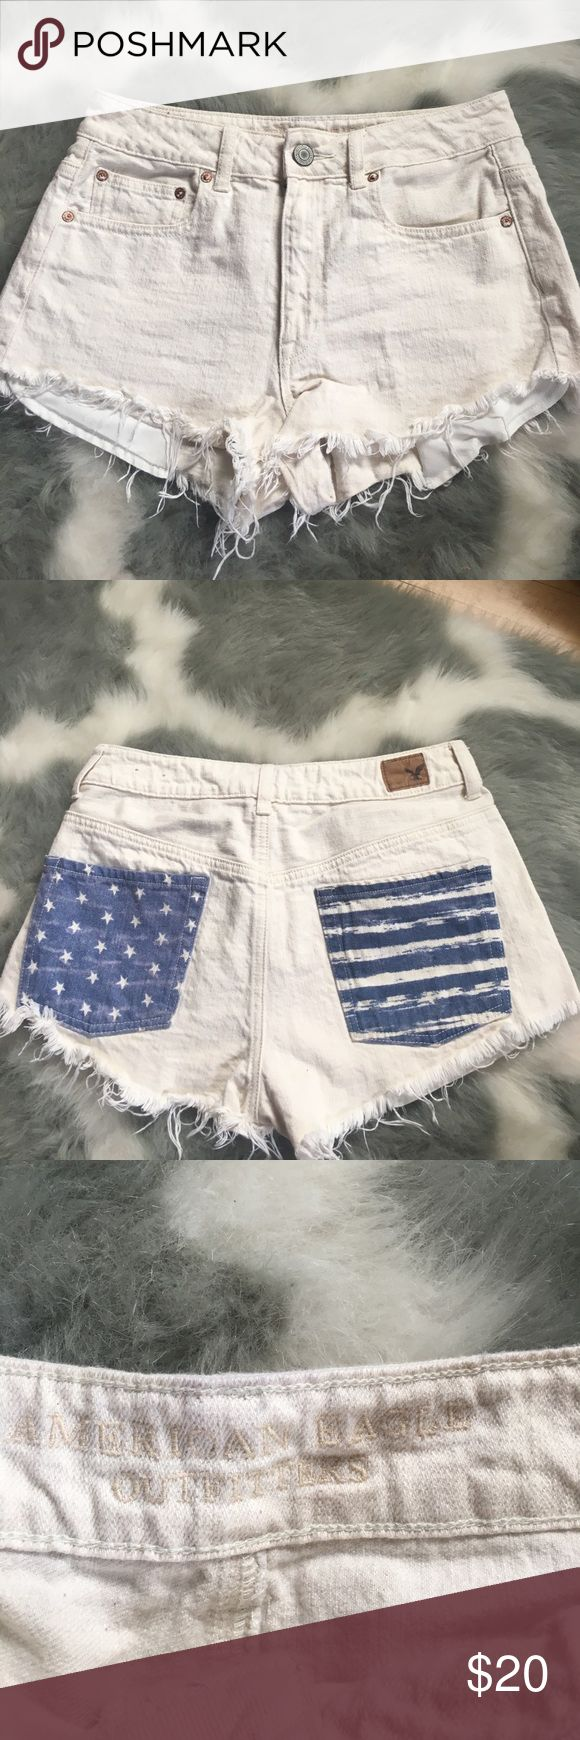 American eagle shorts White/cream shorts with detailed pockets American Eagle Outfitters Shorts Jean Shorts